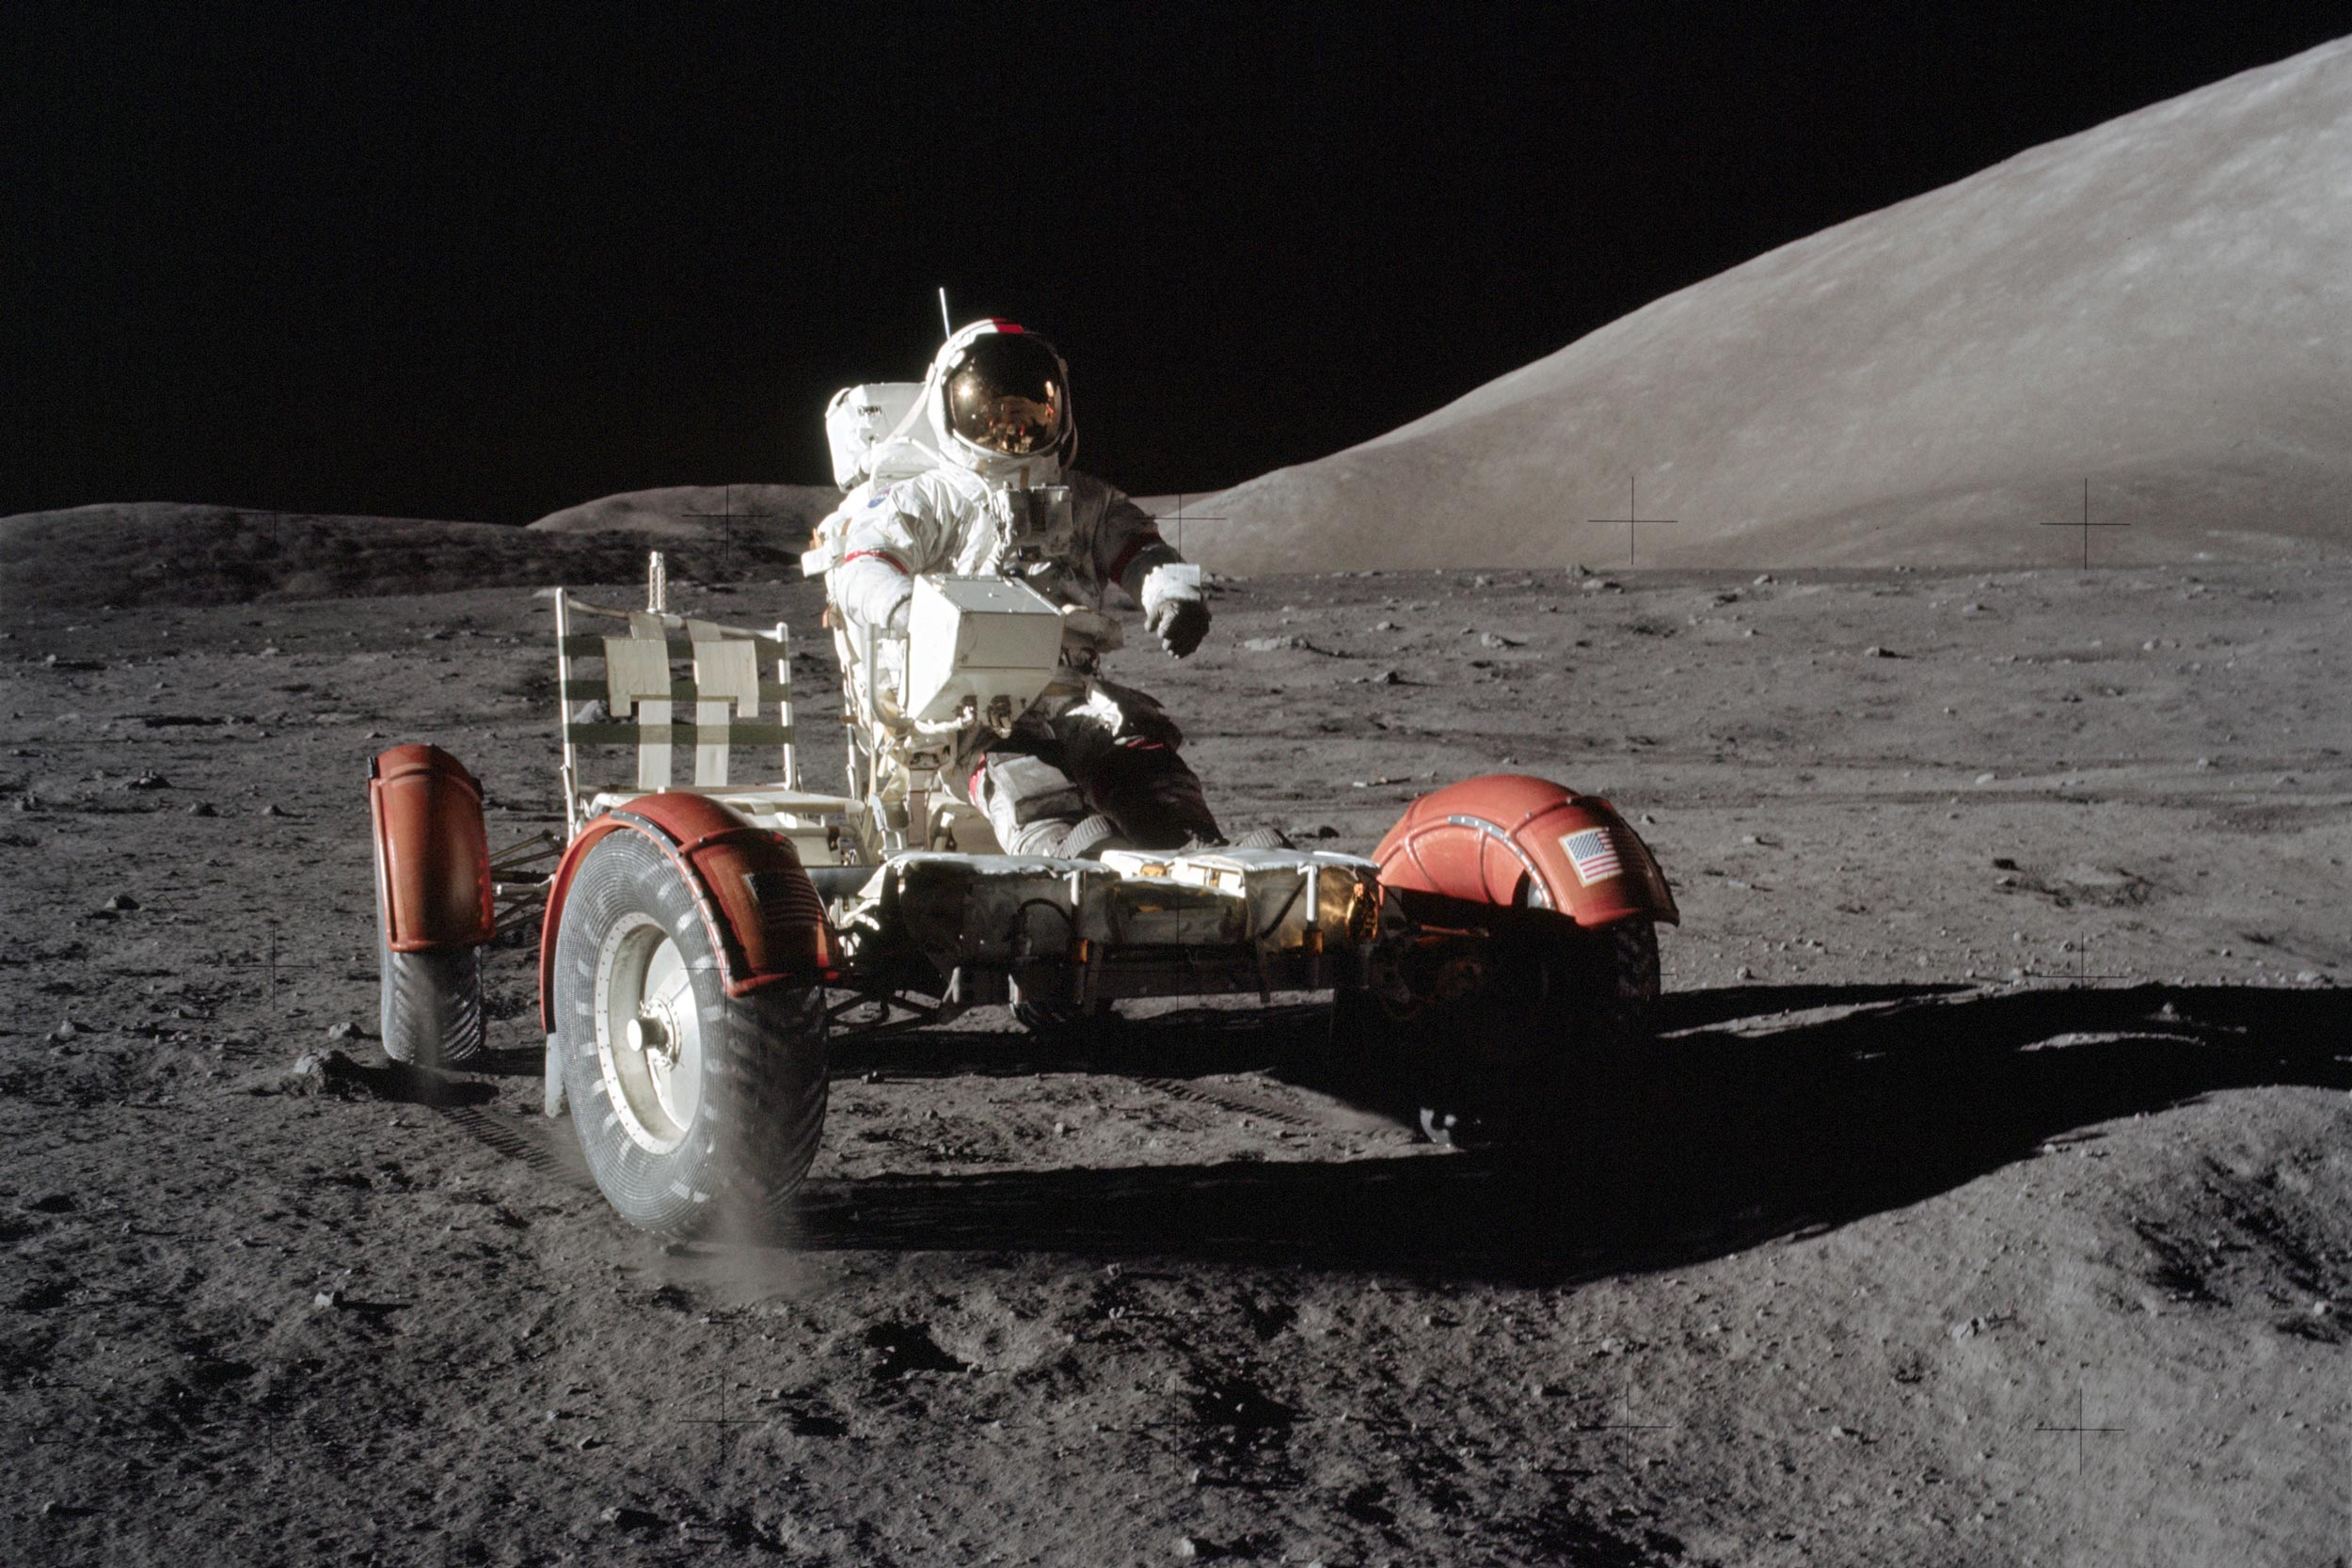 Cernan operates the lunar rover vehicle during a traverse of the lunar surface during the Apollo 17 mission to the moon. (NASA photo)